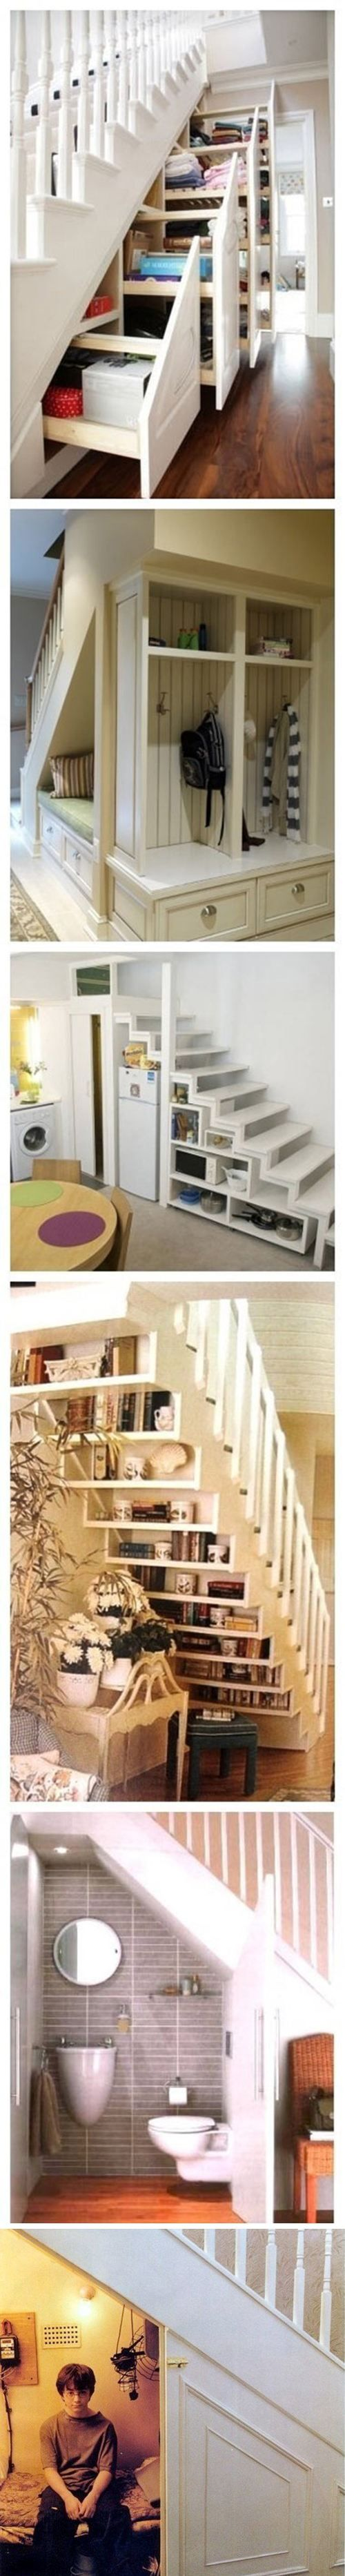 Under the stairs storage ideas (with the exception of storing your child under there. Don't know why they added Harry Potter in when photoshopping the pics together).  Really cool if you can do that in your house.